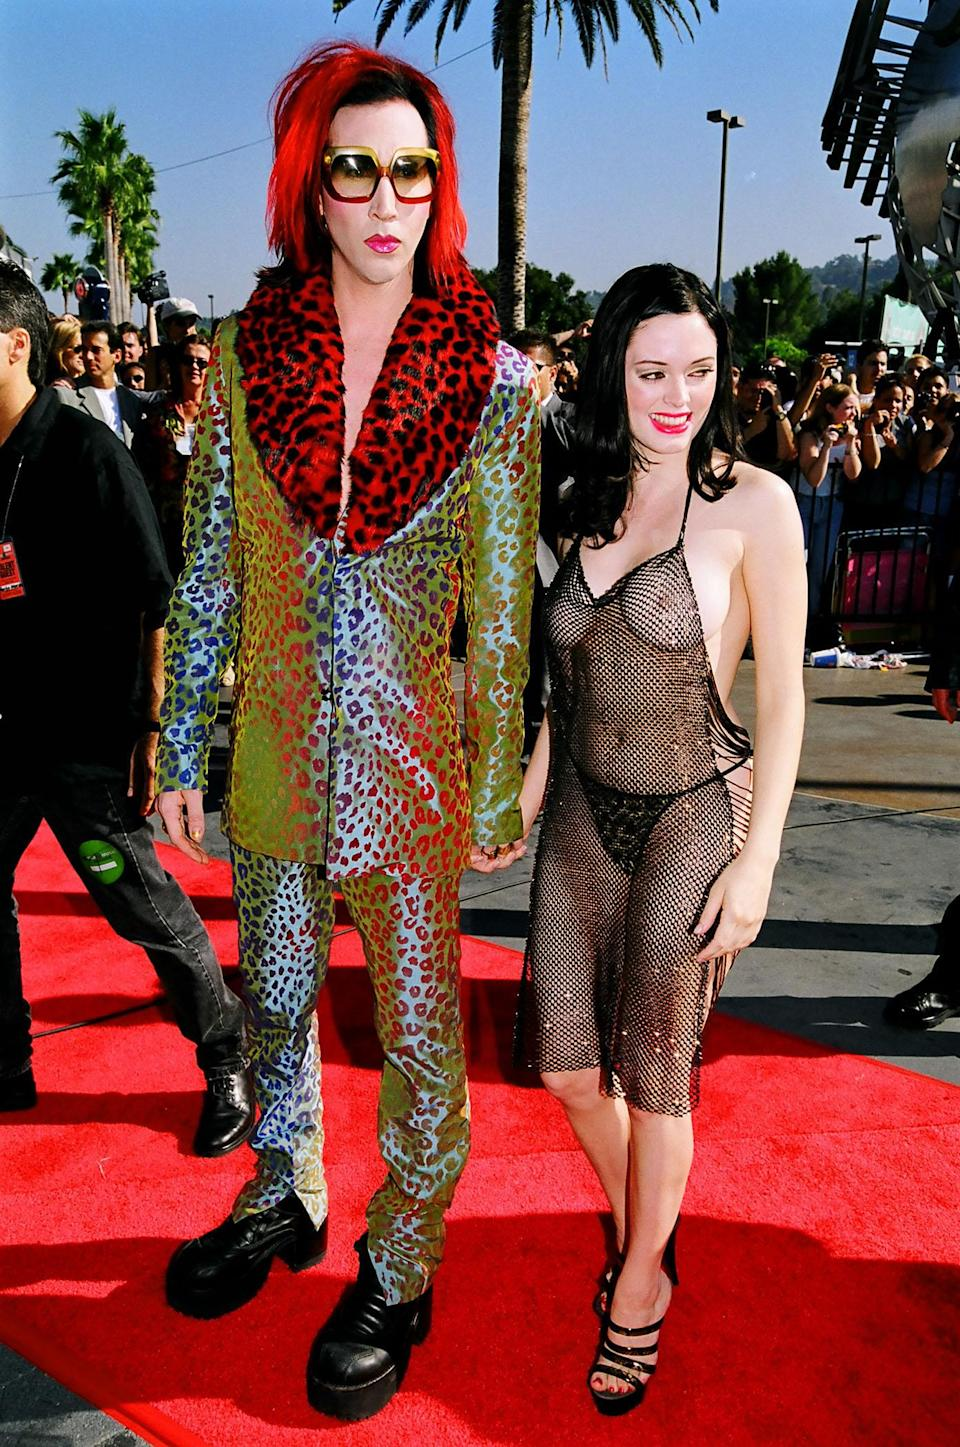 Marilyn Manson and Rose McGowan during 1998 MTV Video Music Award Arrivals at Universal Studios in Universal City, CA, United States. (Photo by Jeff Kravitz/FilmMagic, Inc)